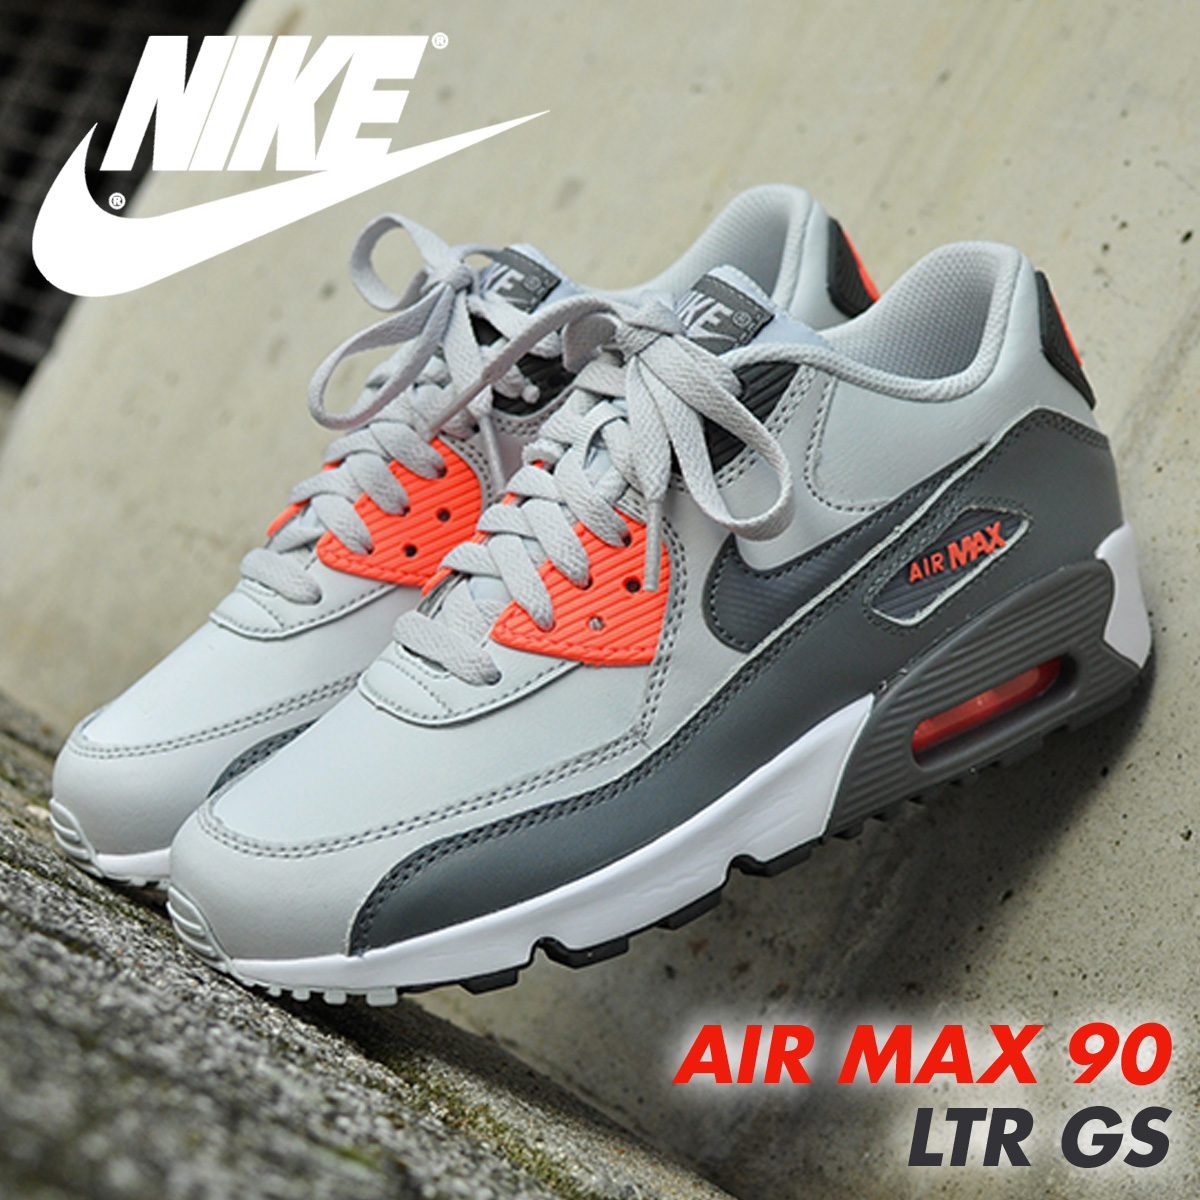 NIKE Kie Ney AMAX 90 Lady's sneakers AIR MAX 90 LTR GS 833,376-006 shoes  white [5/11 Shinnyu load] [175]